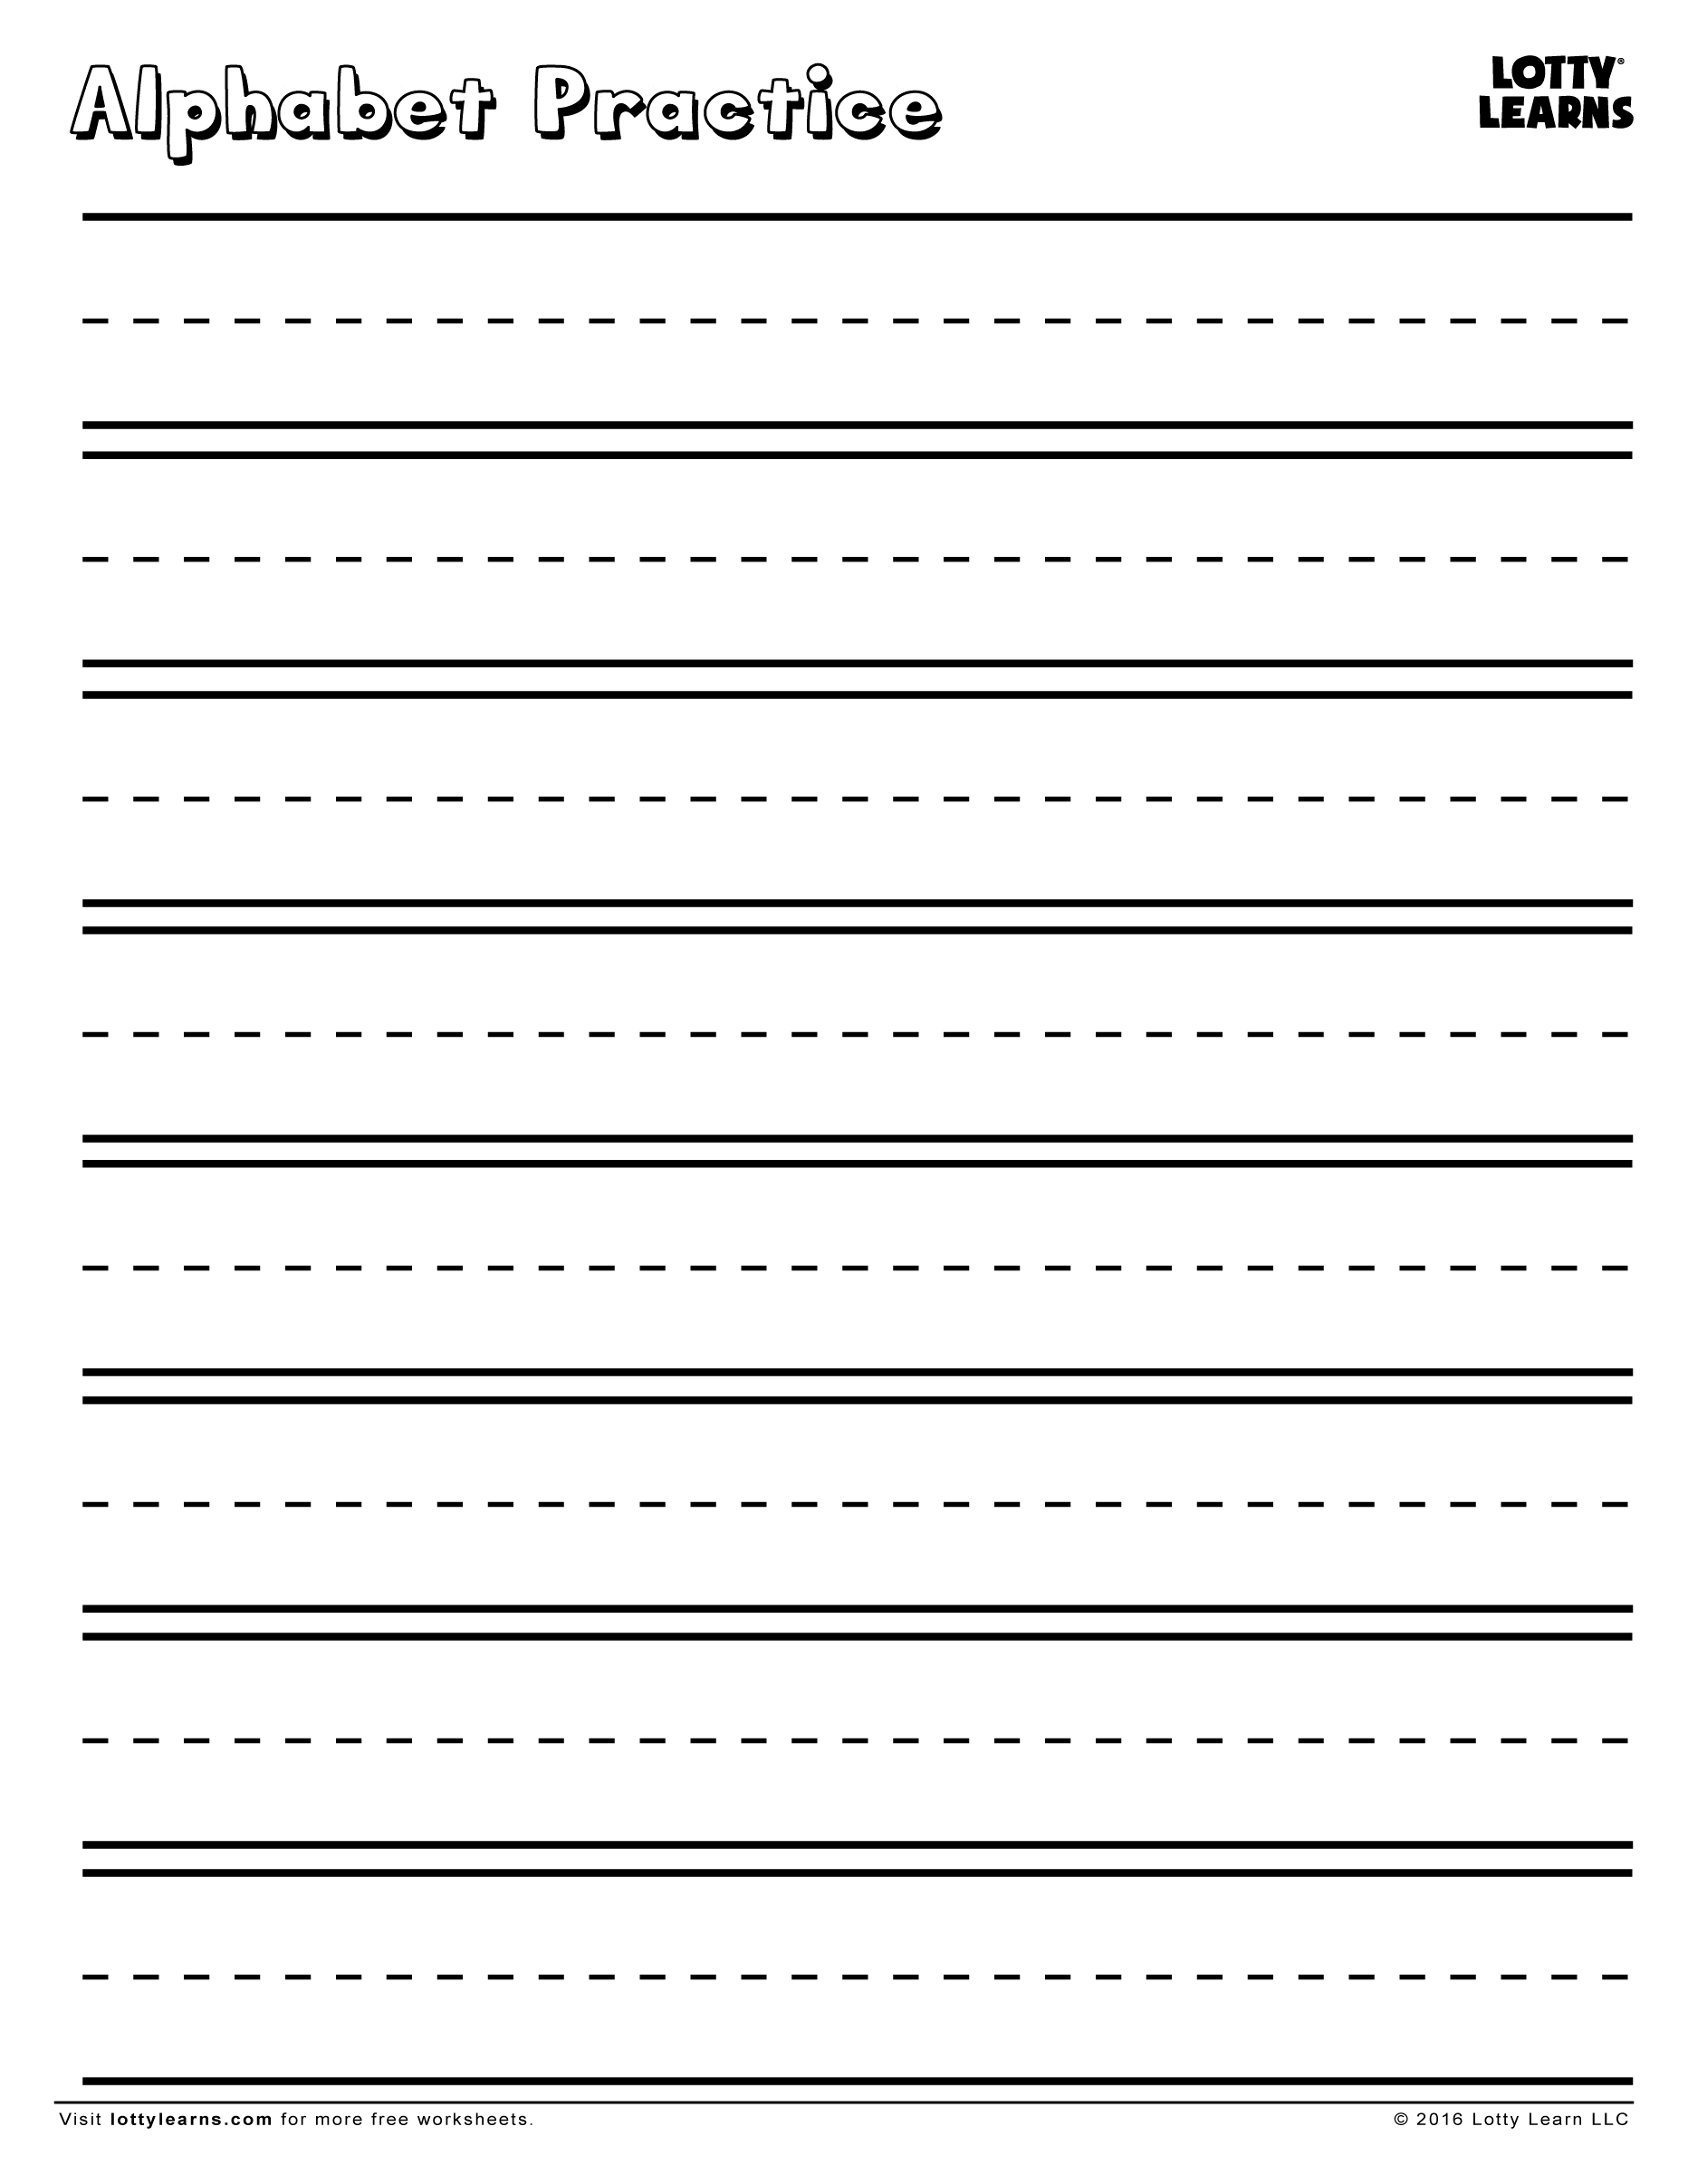 worksheet Alphabet Practice Worksheet alphabet practice sheet lotty learns download share with friends sheet